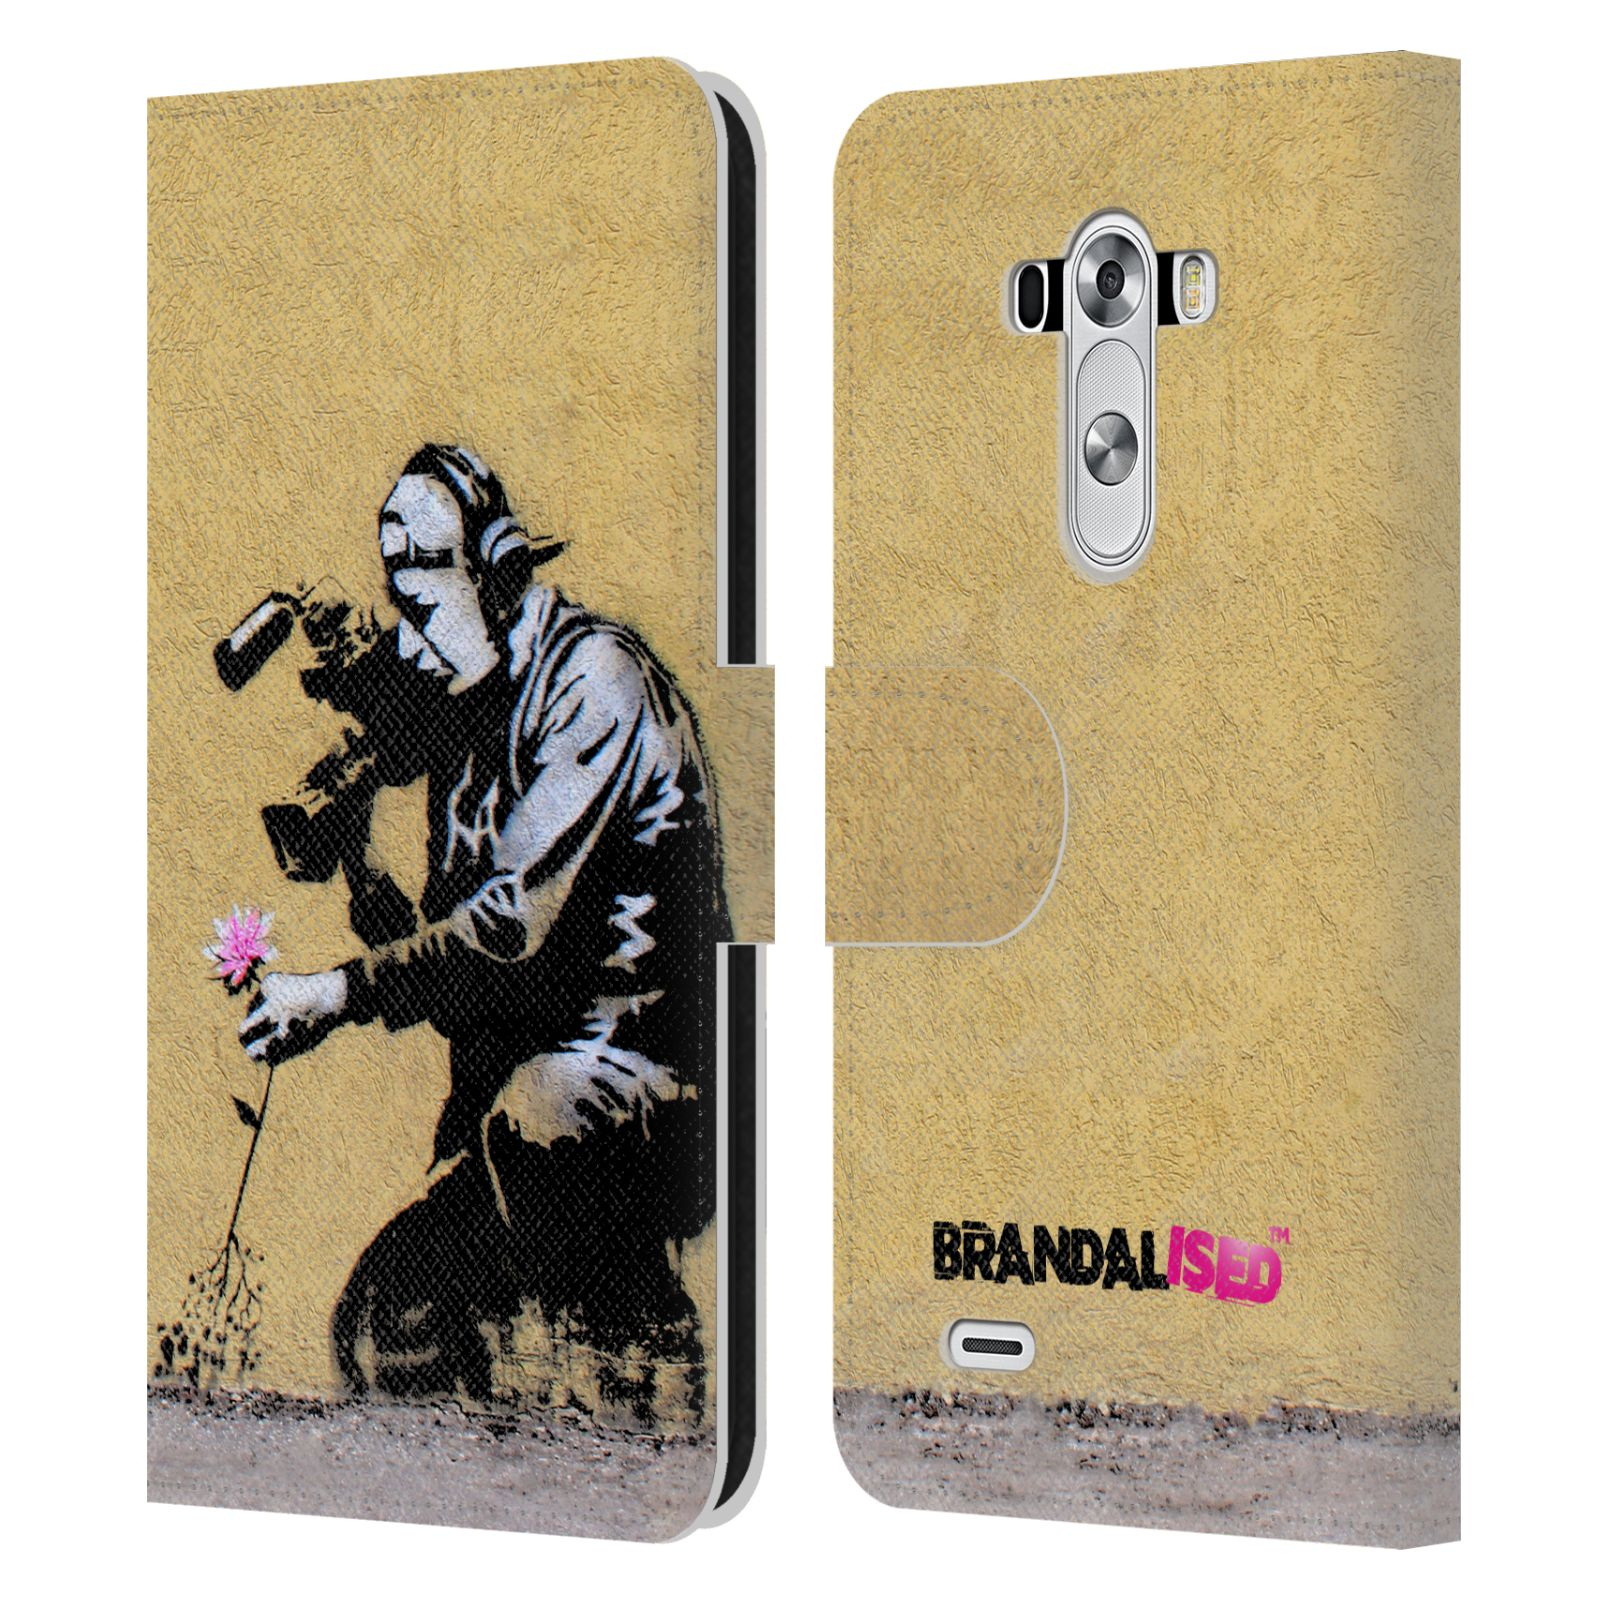 Book Cover Wall Art : Official brandalised wall art leather book wallet case